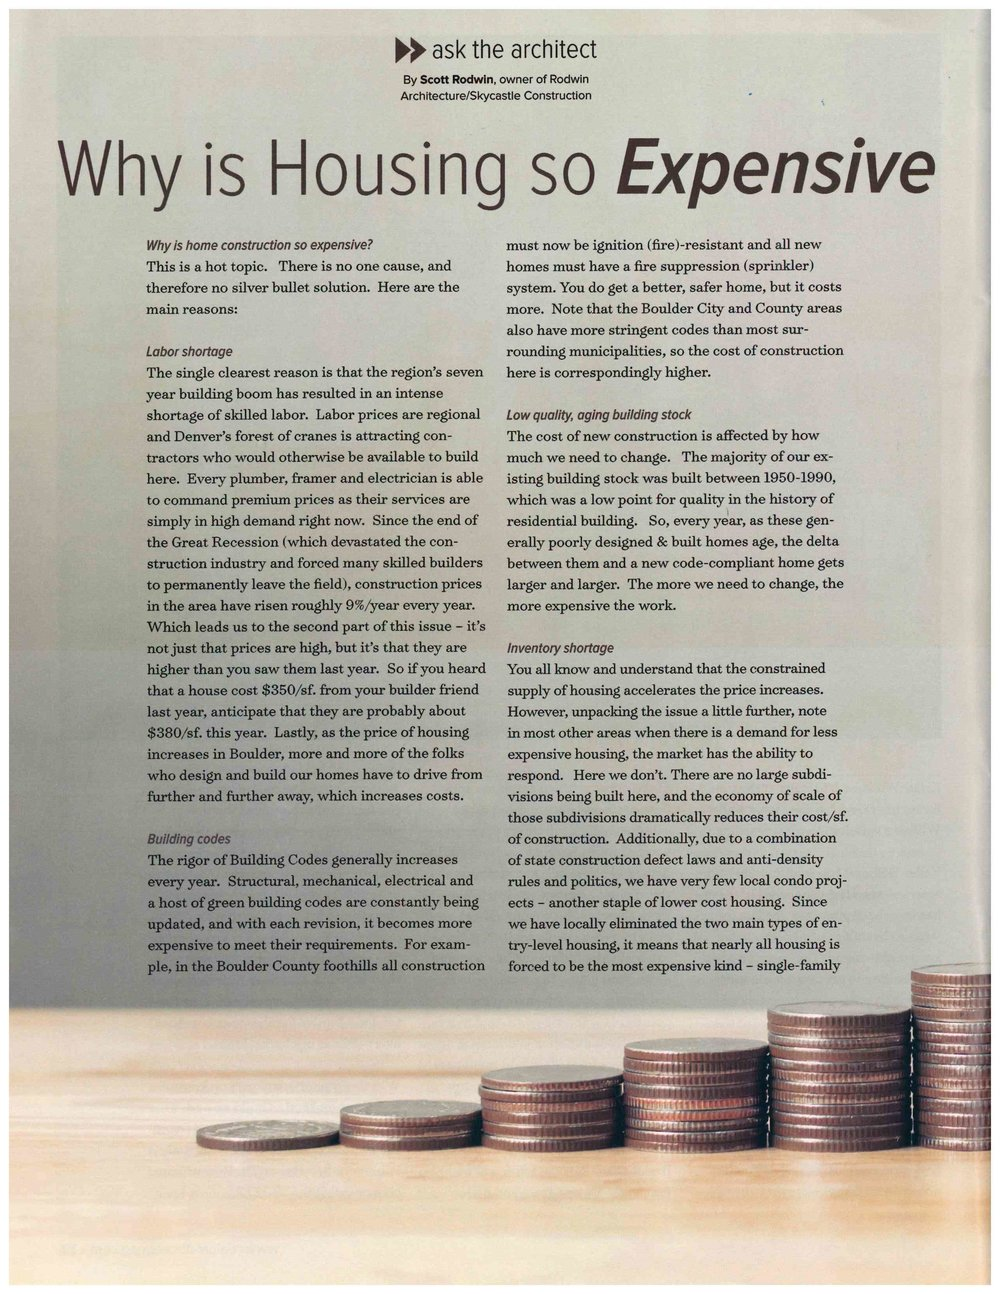 Why is Housing so Expensive article.jpg